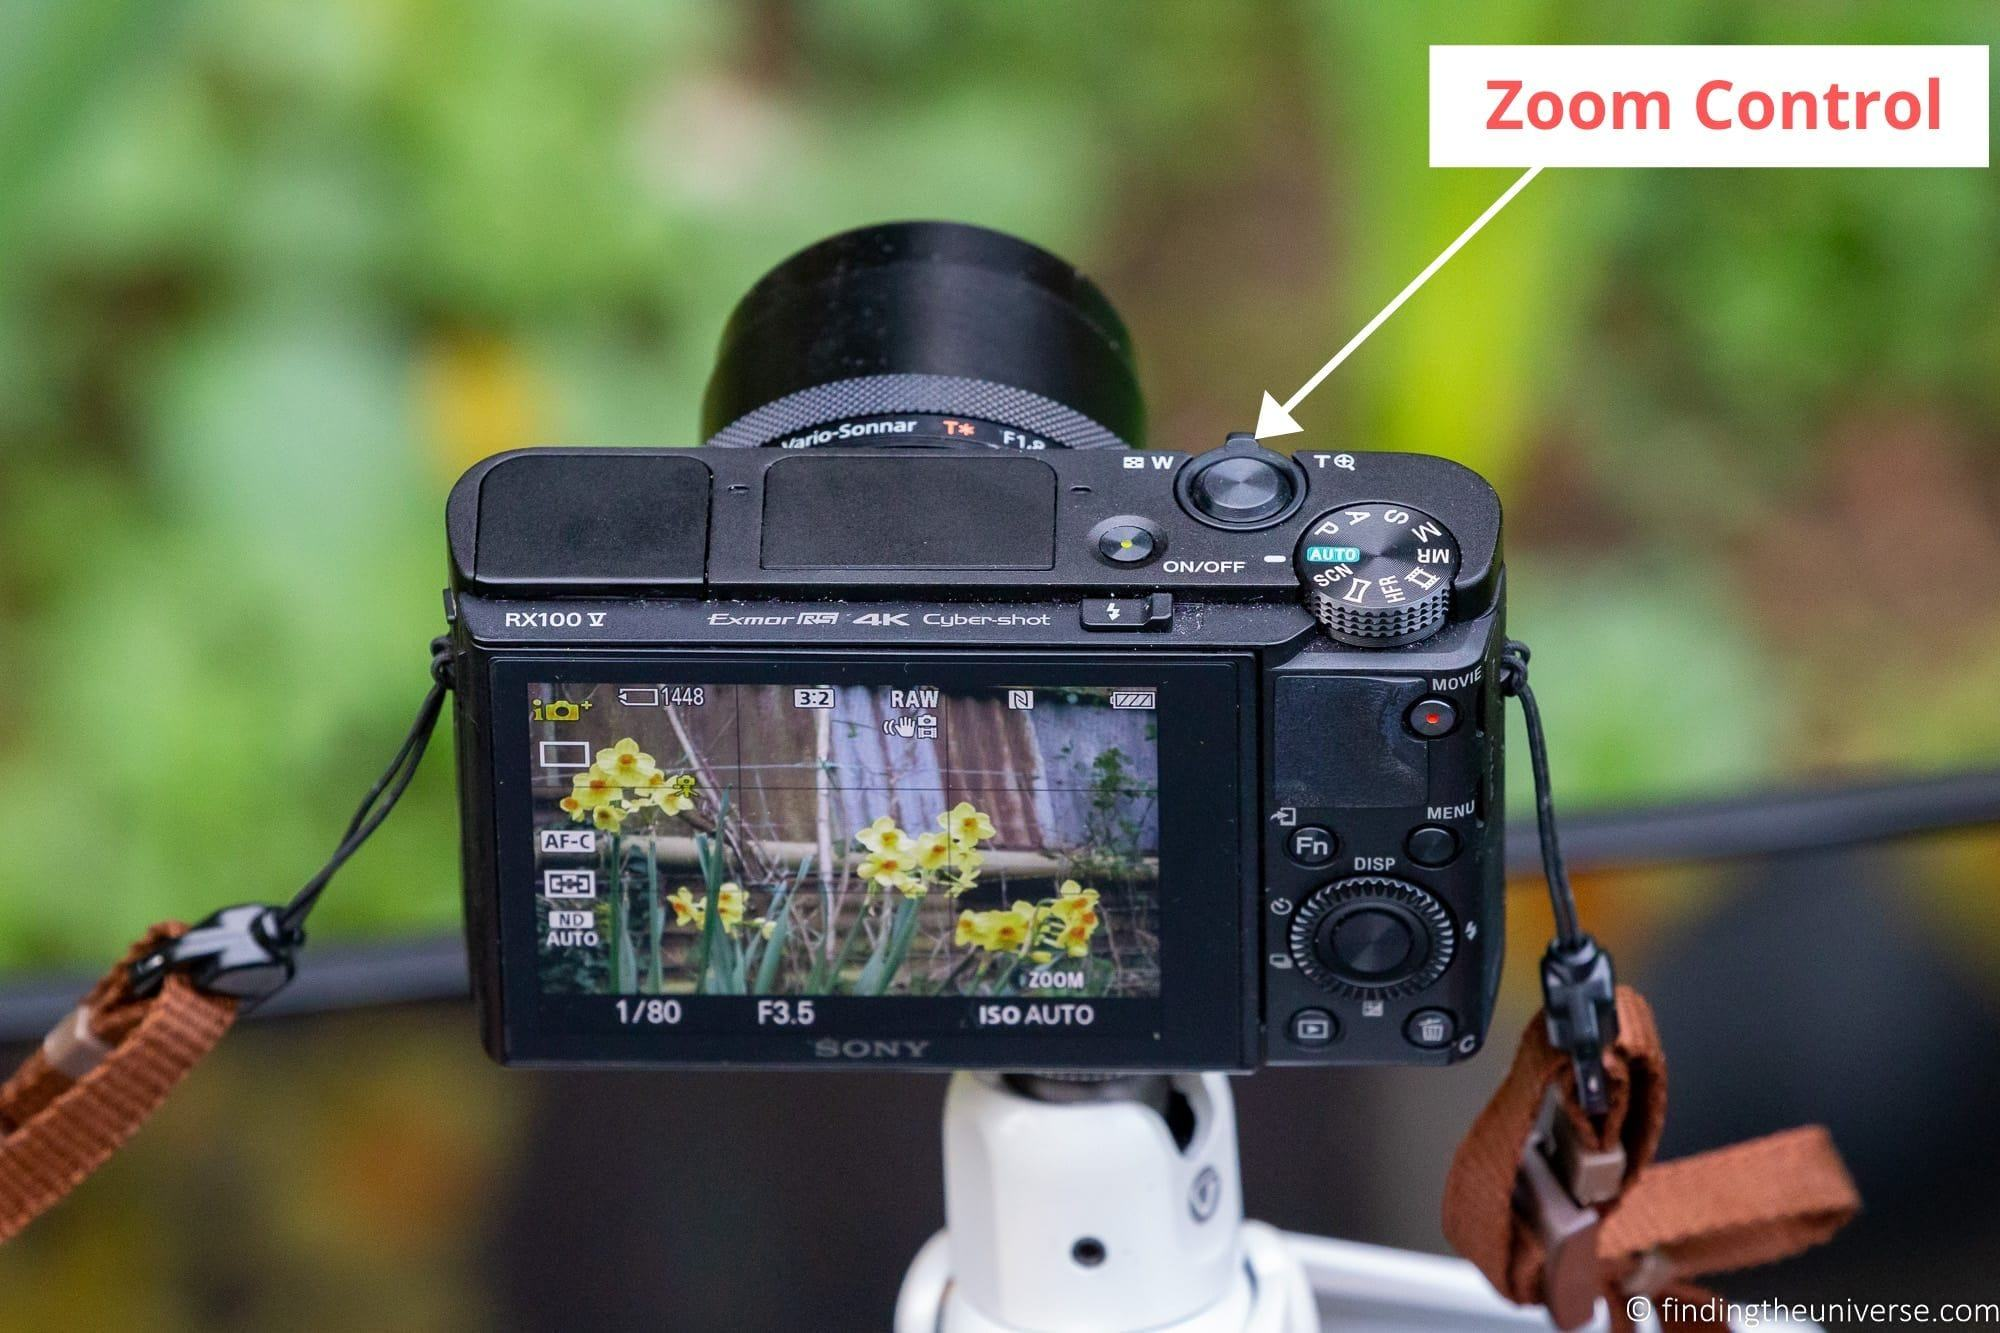 Compact Camera Zoom Control